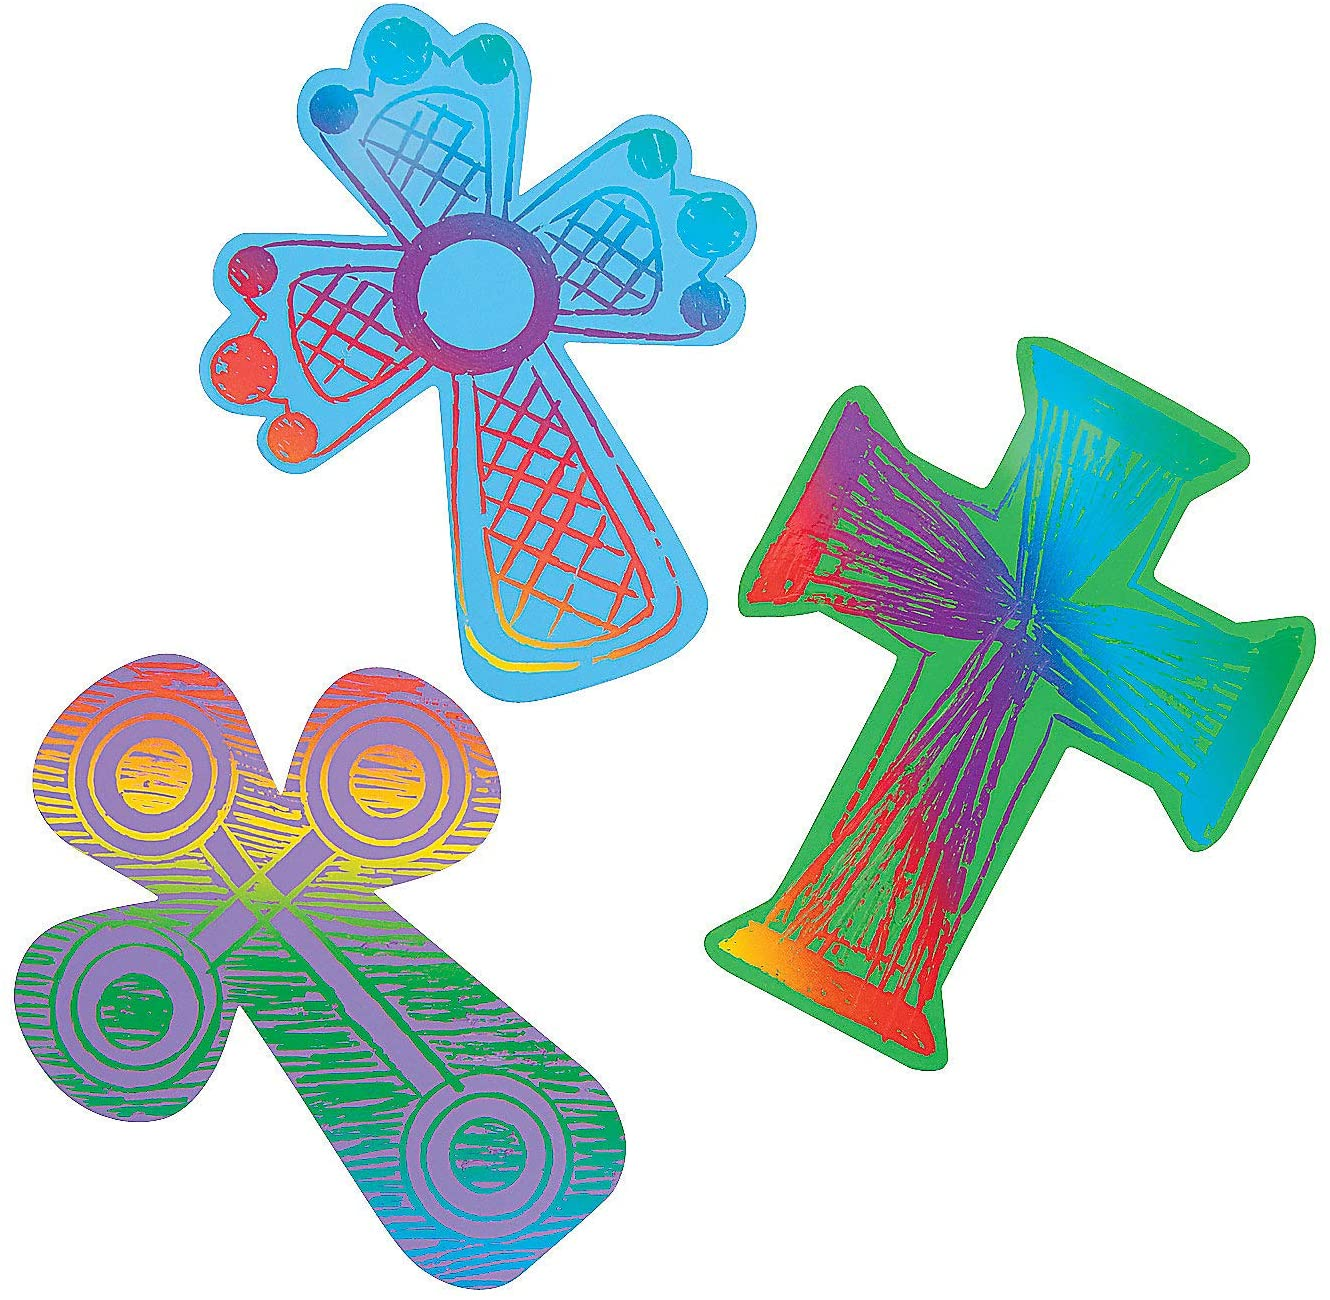 Colored Cross Magic Scratch - 24 Count - Crafts for Kids and Fun Home Activities